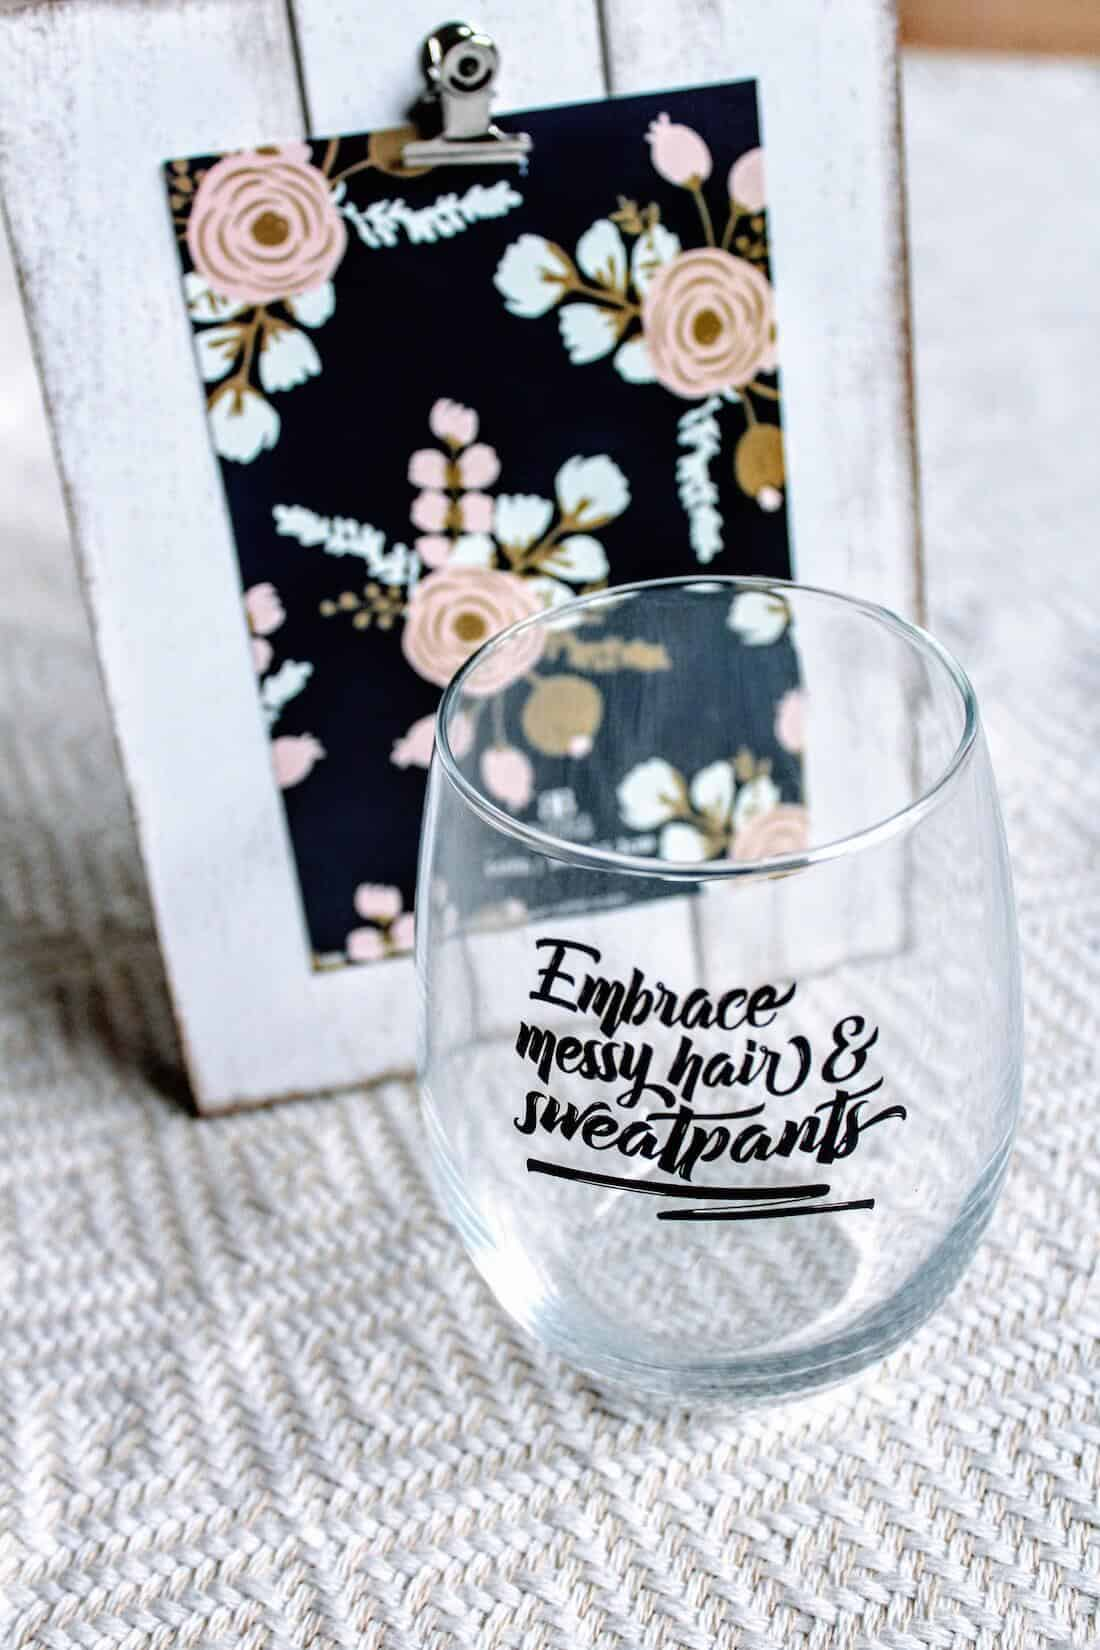 Embrace messy hair and sweatpants wine glass next to picture frame for gift basket.